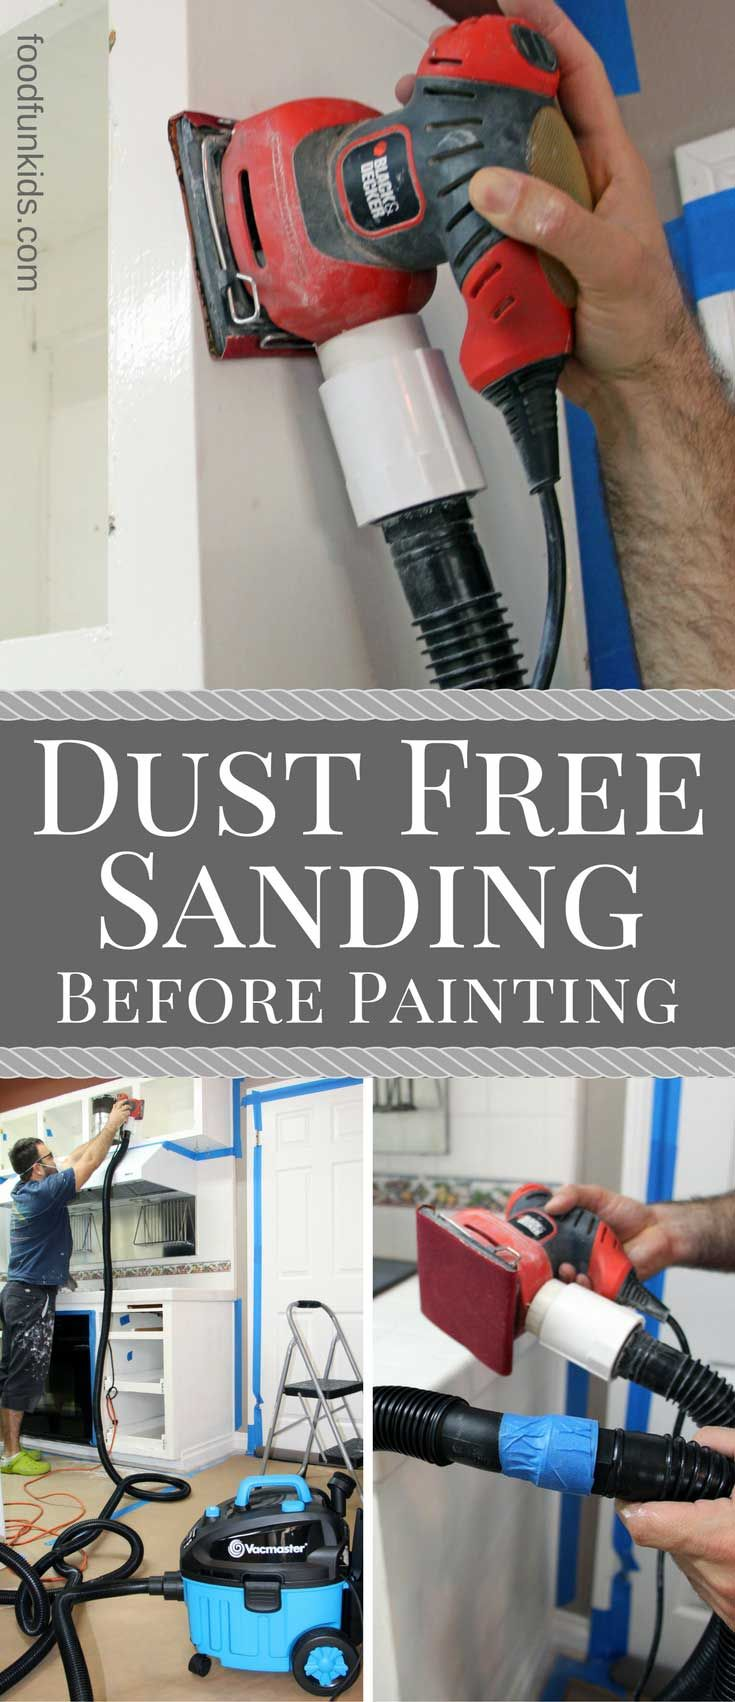 Dust Free Sanding Before Painting will allow you to prep your walls or surfaces quickly with little to no mess.